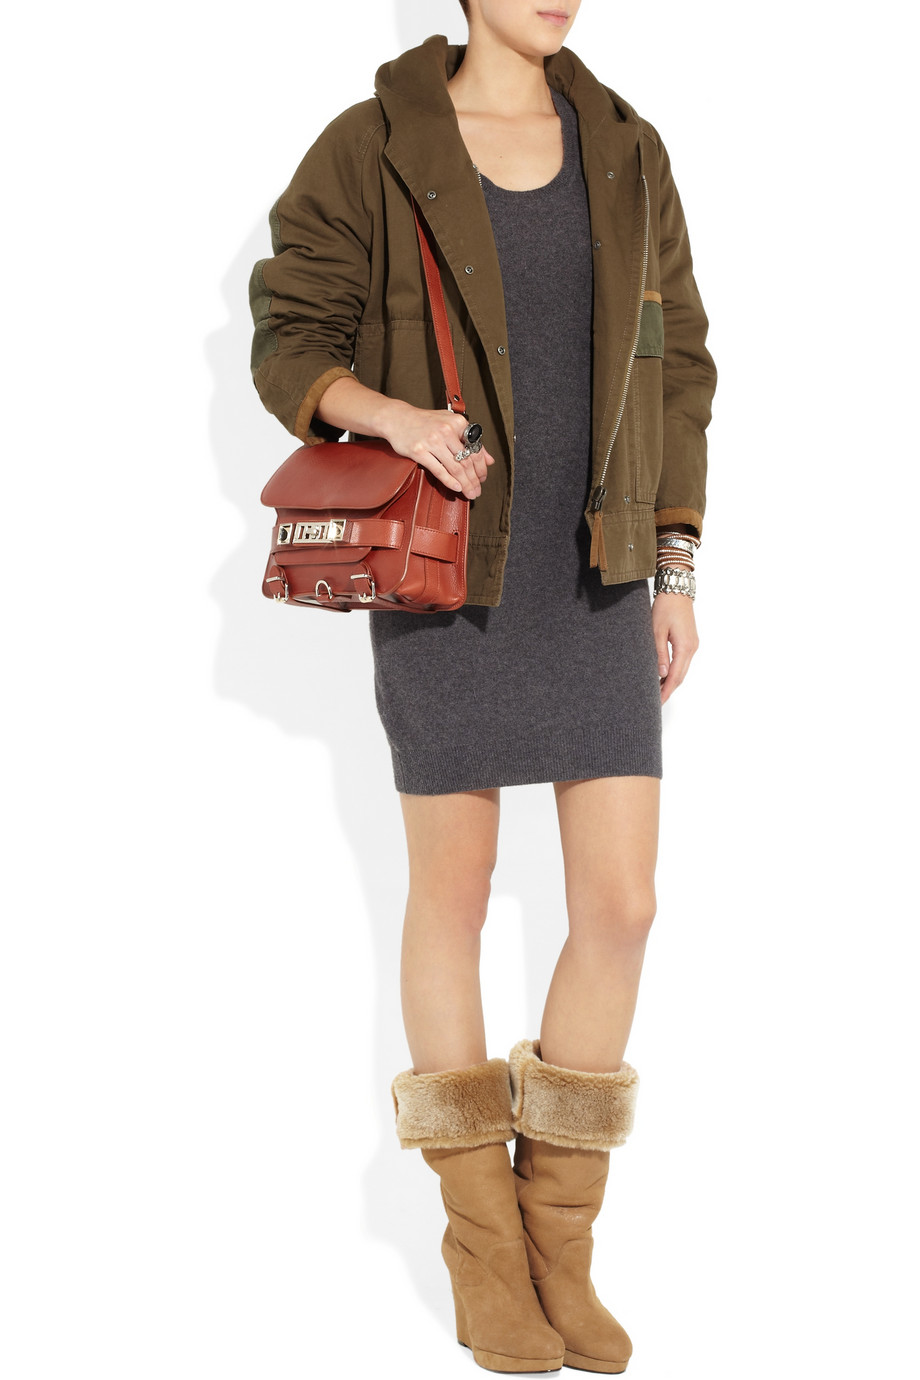 DKNY Shearling Wedge Boots in Tan (Brown)